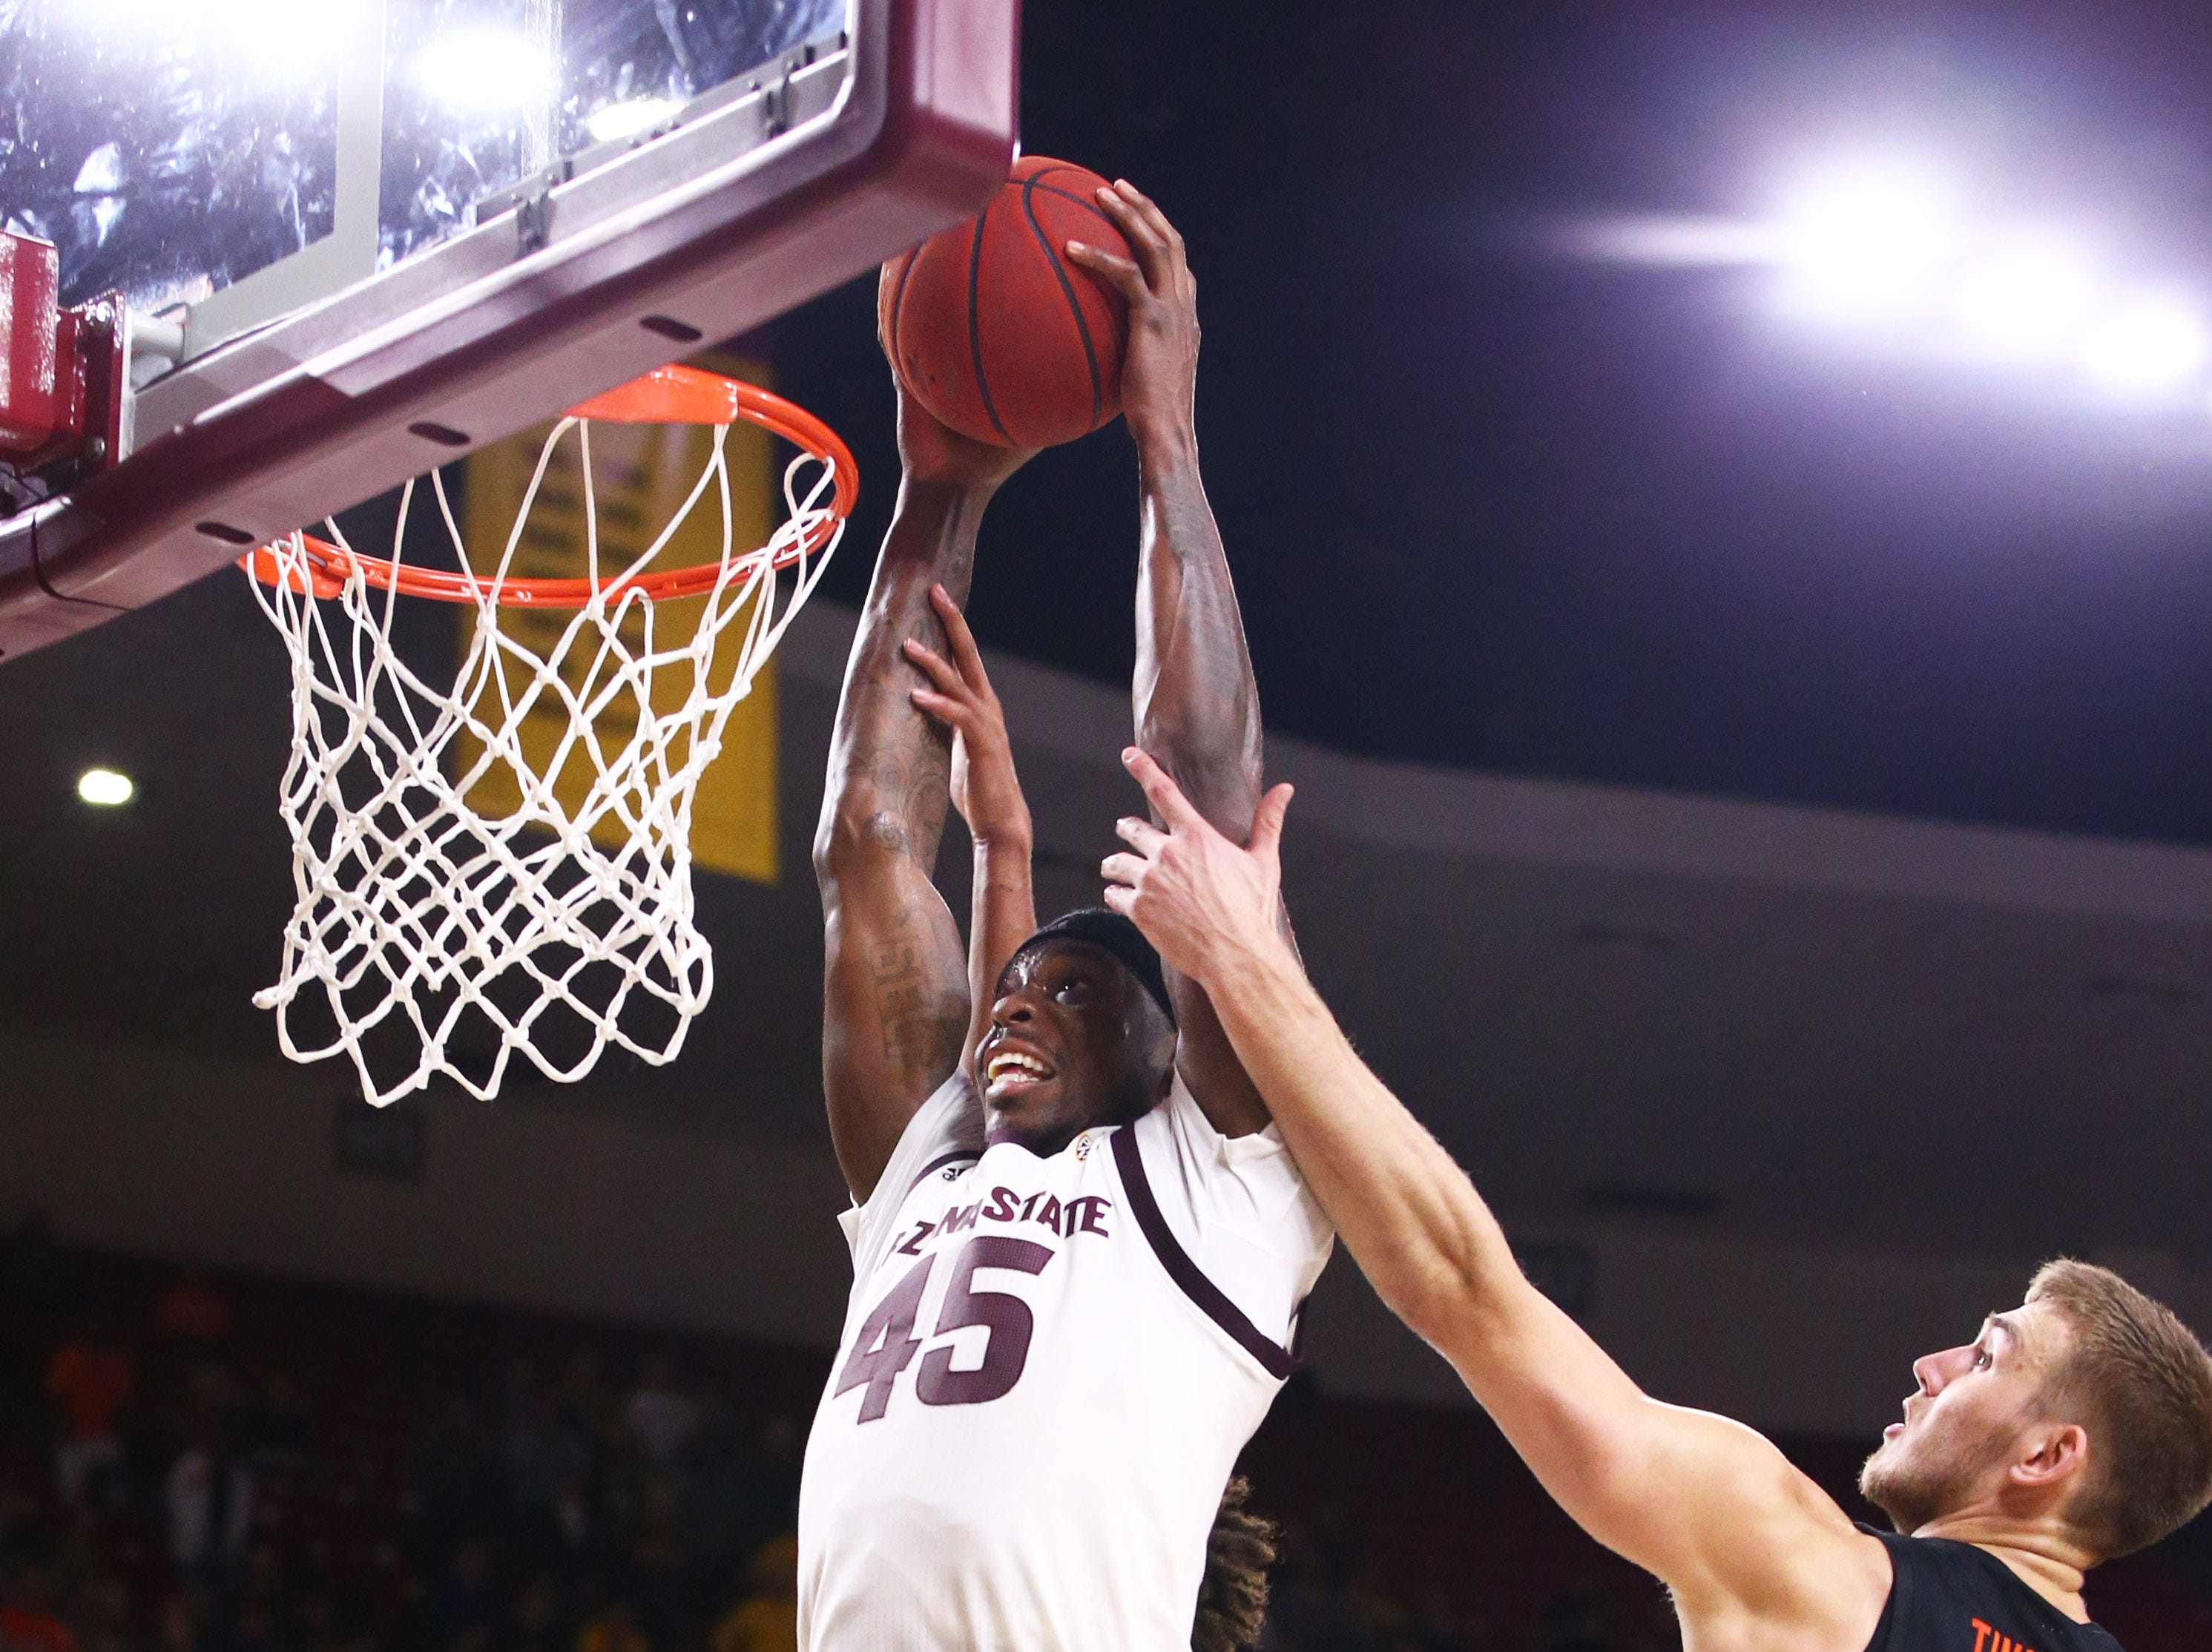 Arizona State Sun Devils forward Zylan Cheatham slam-dunks the ball against the Oregon State Beavers in the second half on Jan. 17 at Wells Fargo Arena in Tempe.